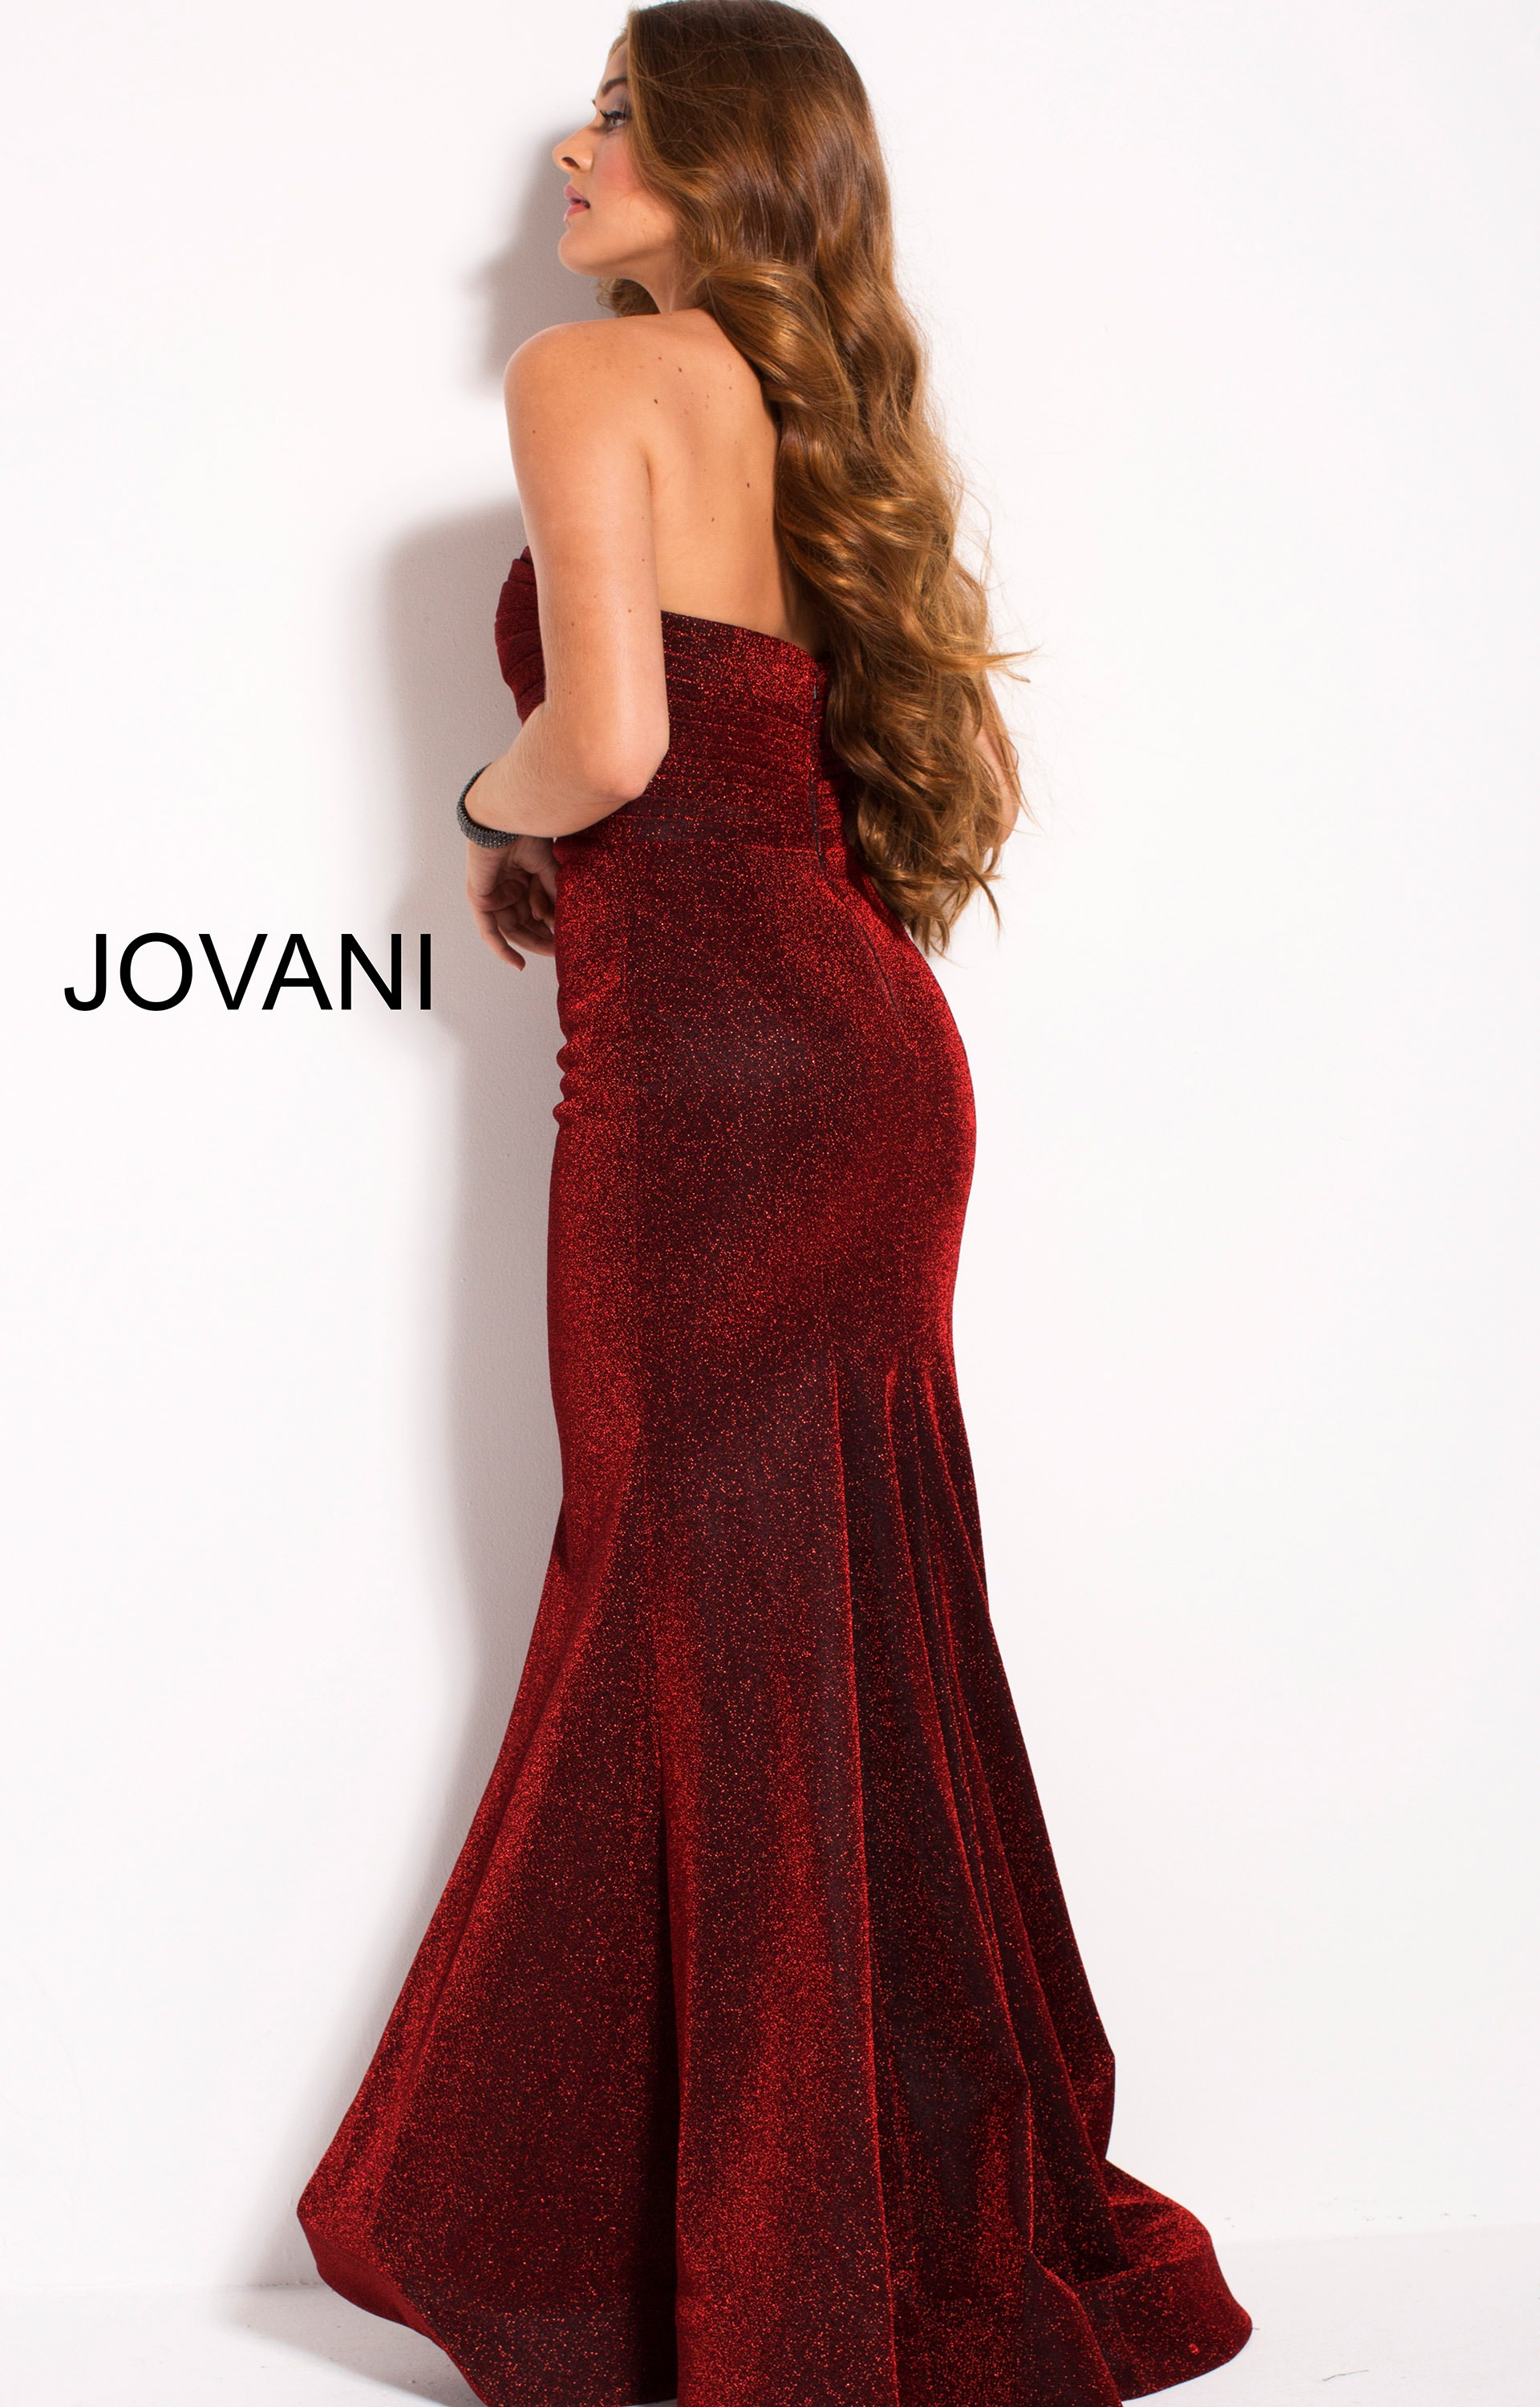 979cd2a846b4 ... Jovani 56063 Fitted picture 2 · Jovani 56063 Long picture 3 · Jovani  56063. Strapless Sweetheart Neckline Shimmering Mermaid Dress